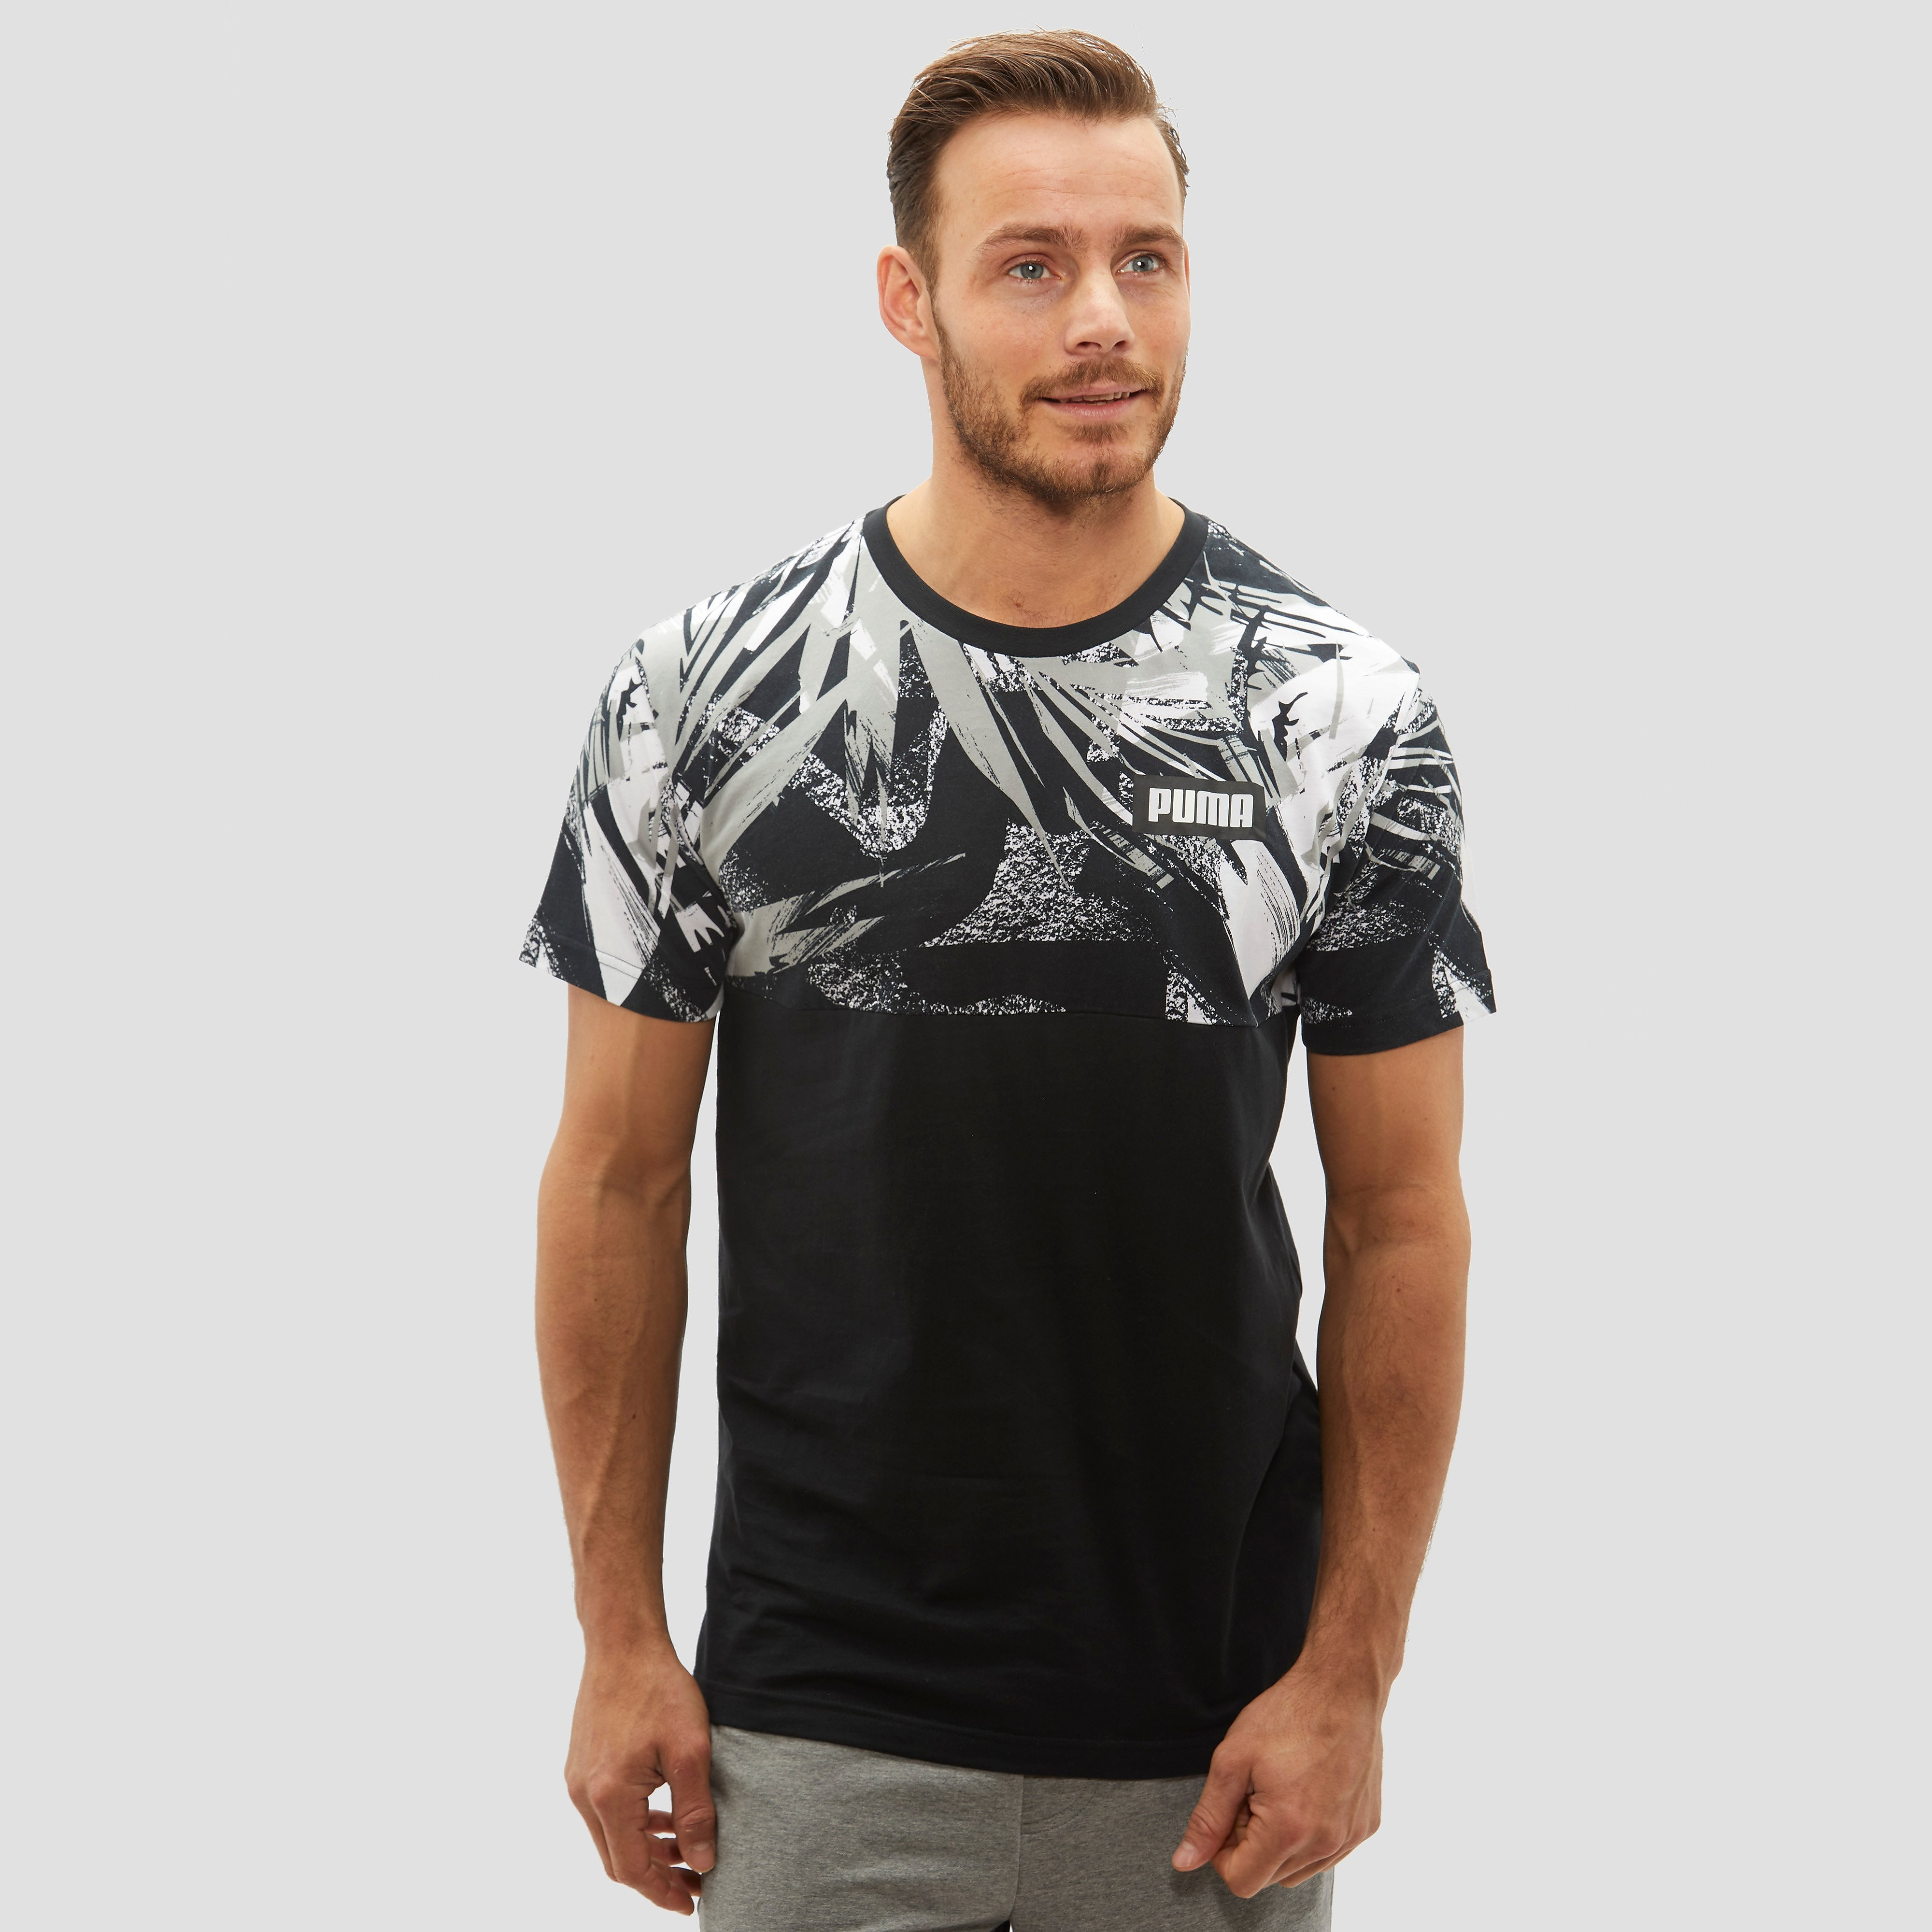 PUMA SUMMER ALL OVER PRINT SHIRT ZWART HEREN